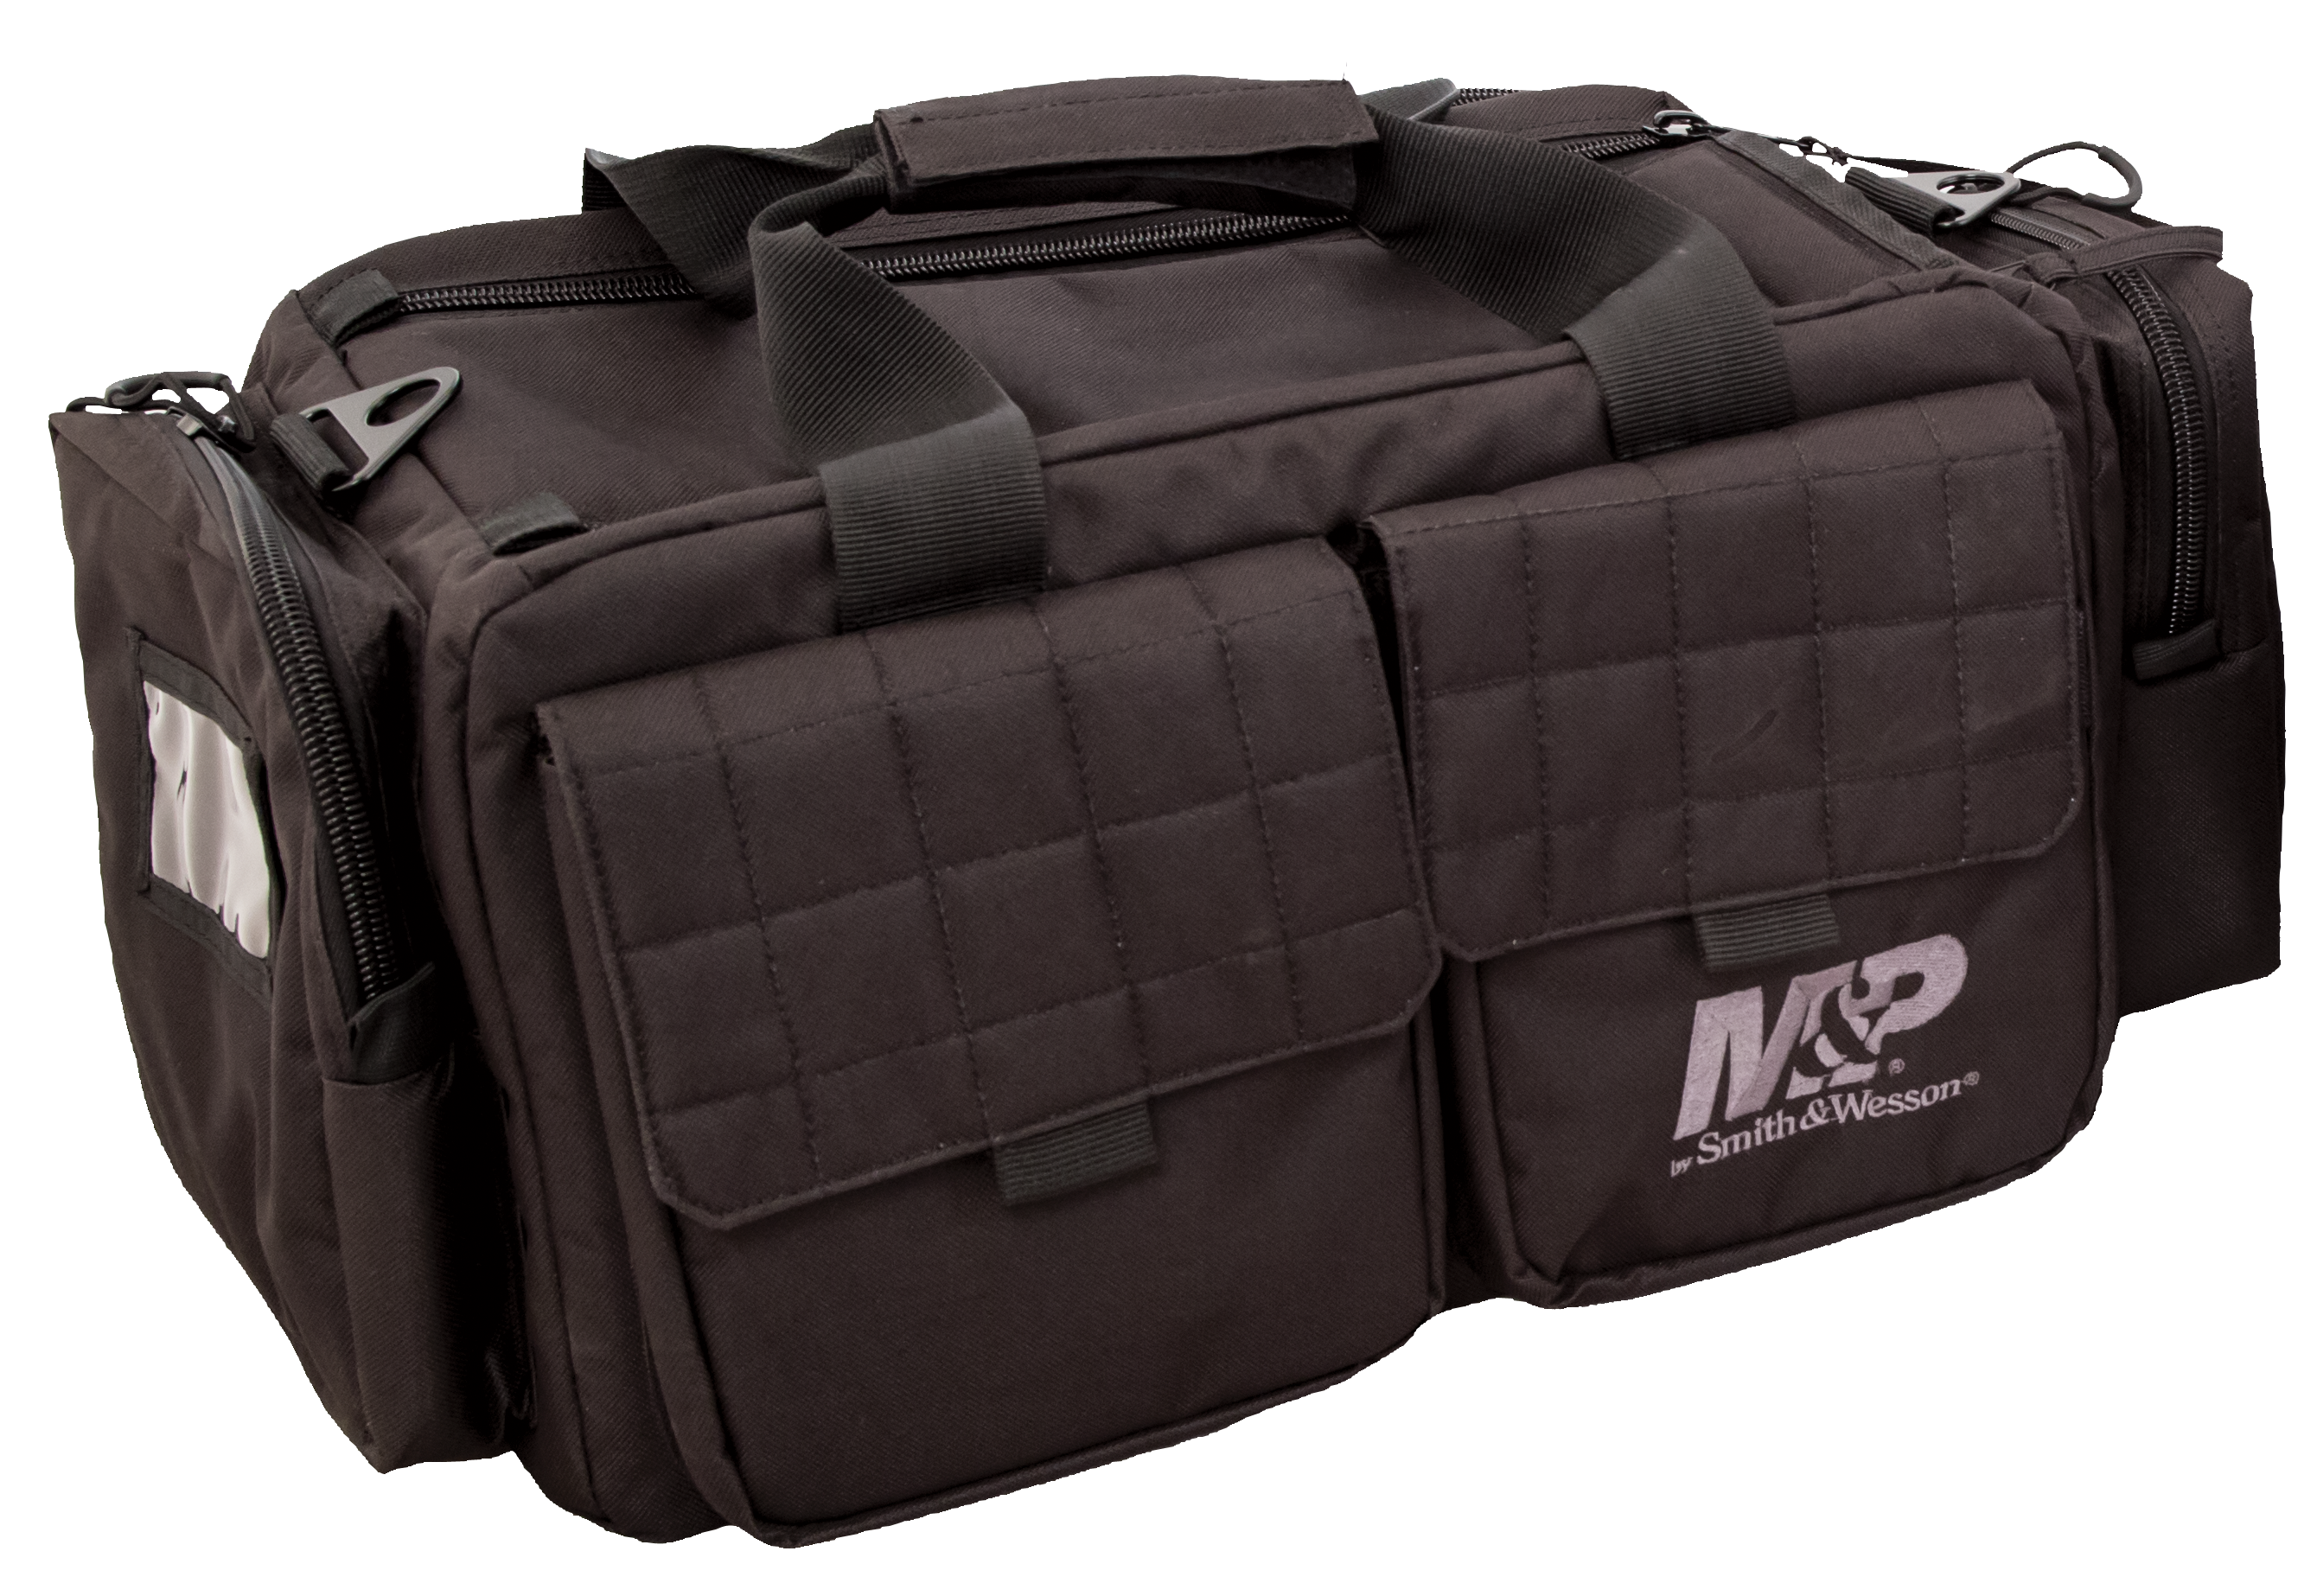 Smith & Wesson M&P Officer Tactical Range Bag Black